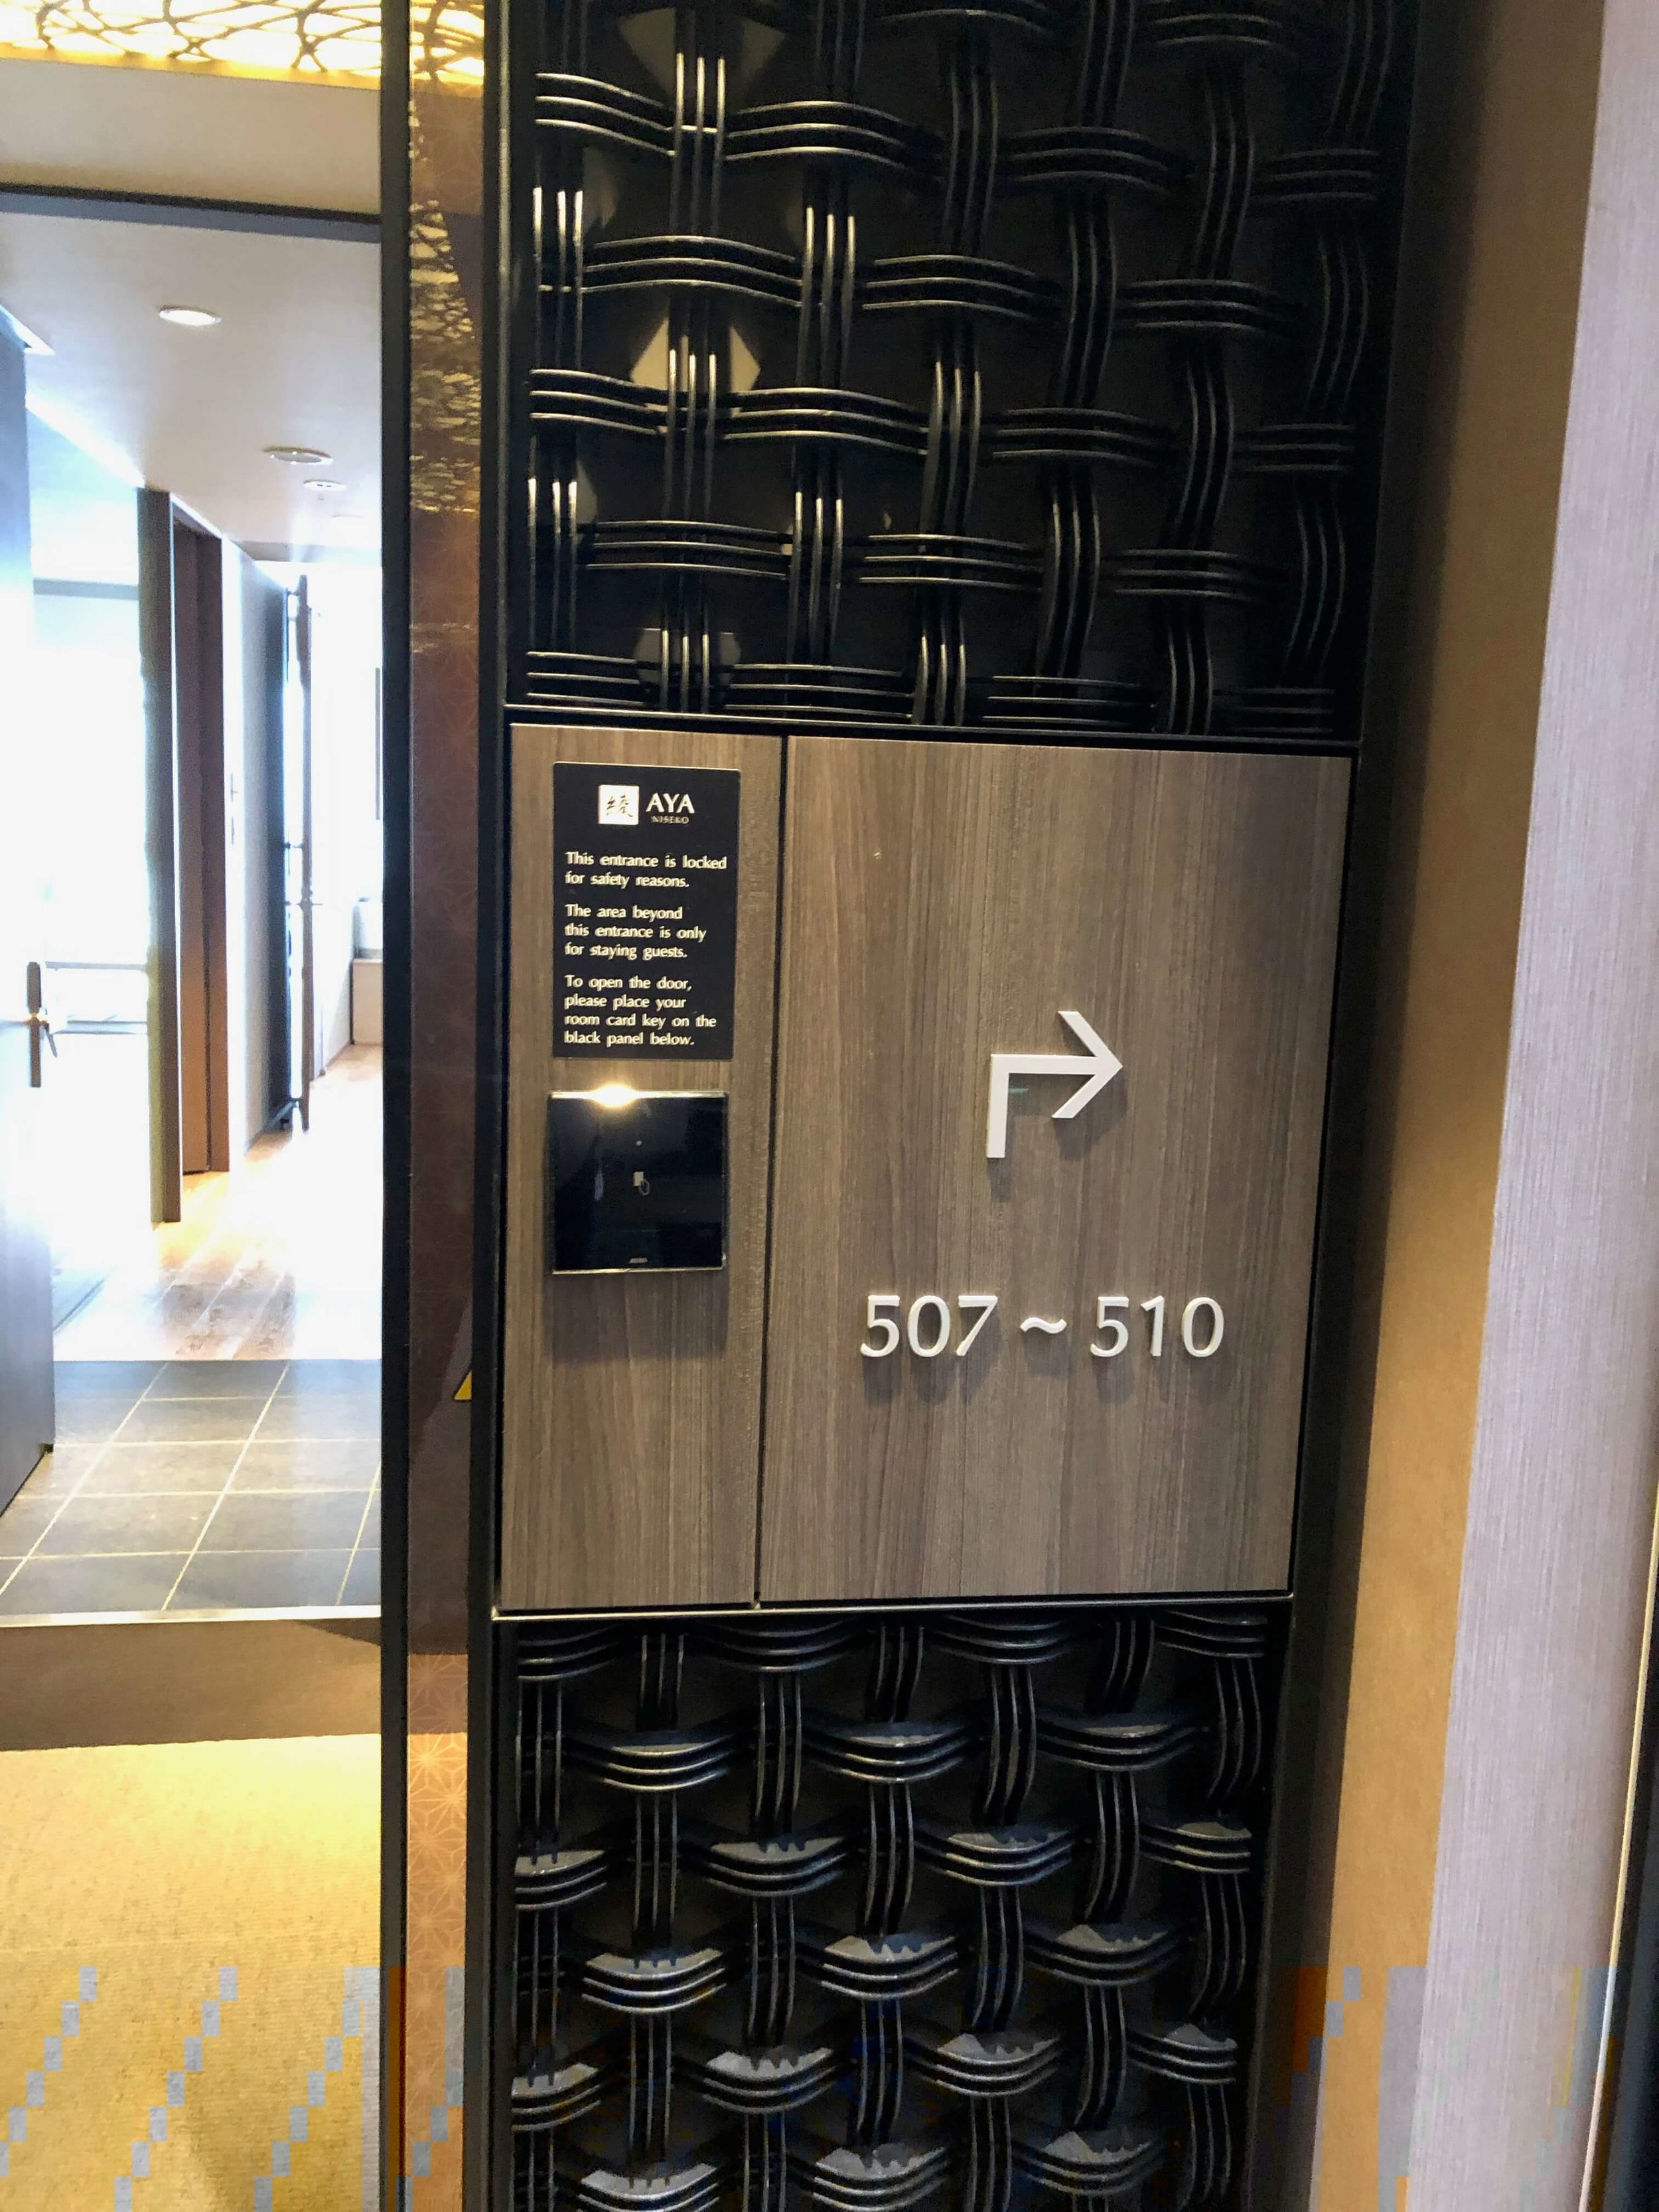 You need your key card to enter the areas with the rooms (we shared the 5th floor with Powder Yoga so this is to ensure that non-hotel guests can't just be roaming the halls).